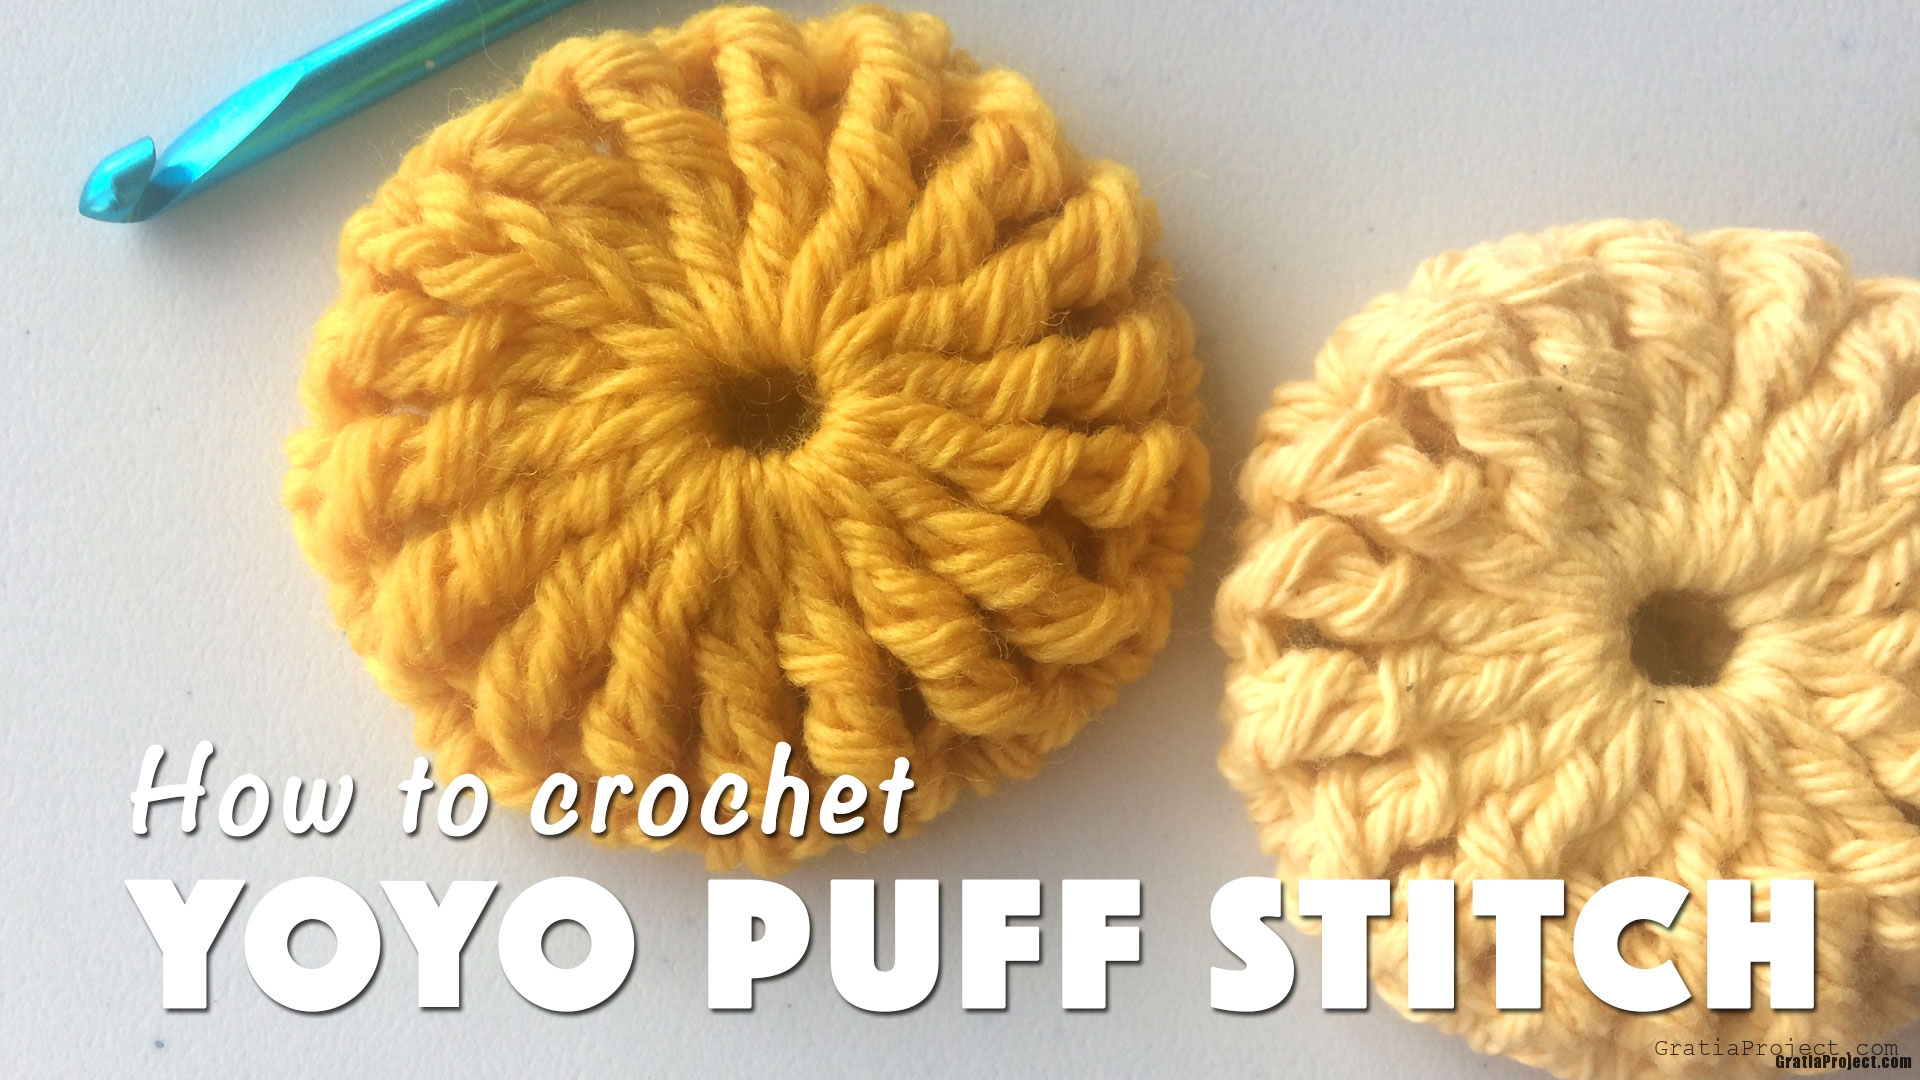 how-to-crochet-yoyo-puff-stitch